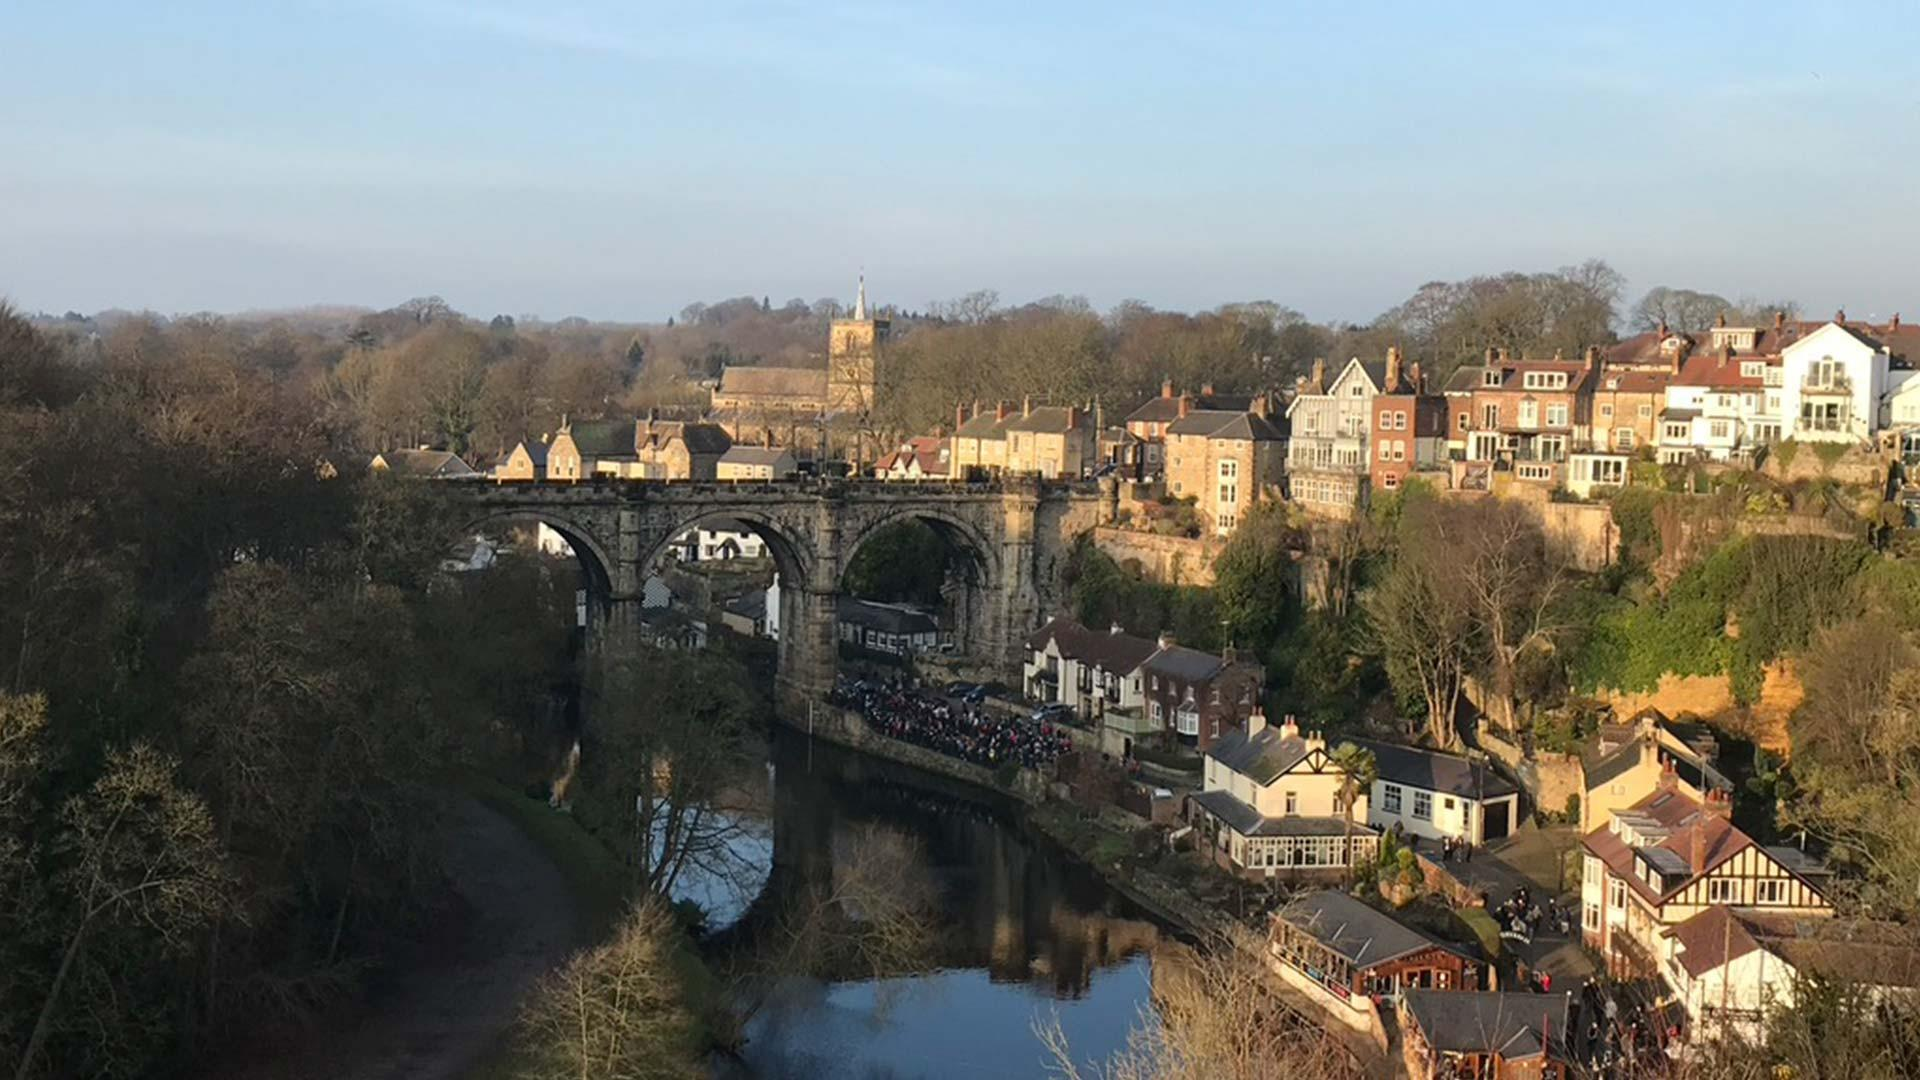 Knaresborough from the Castle Grounds